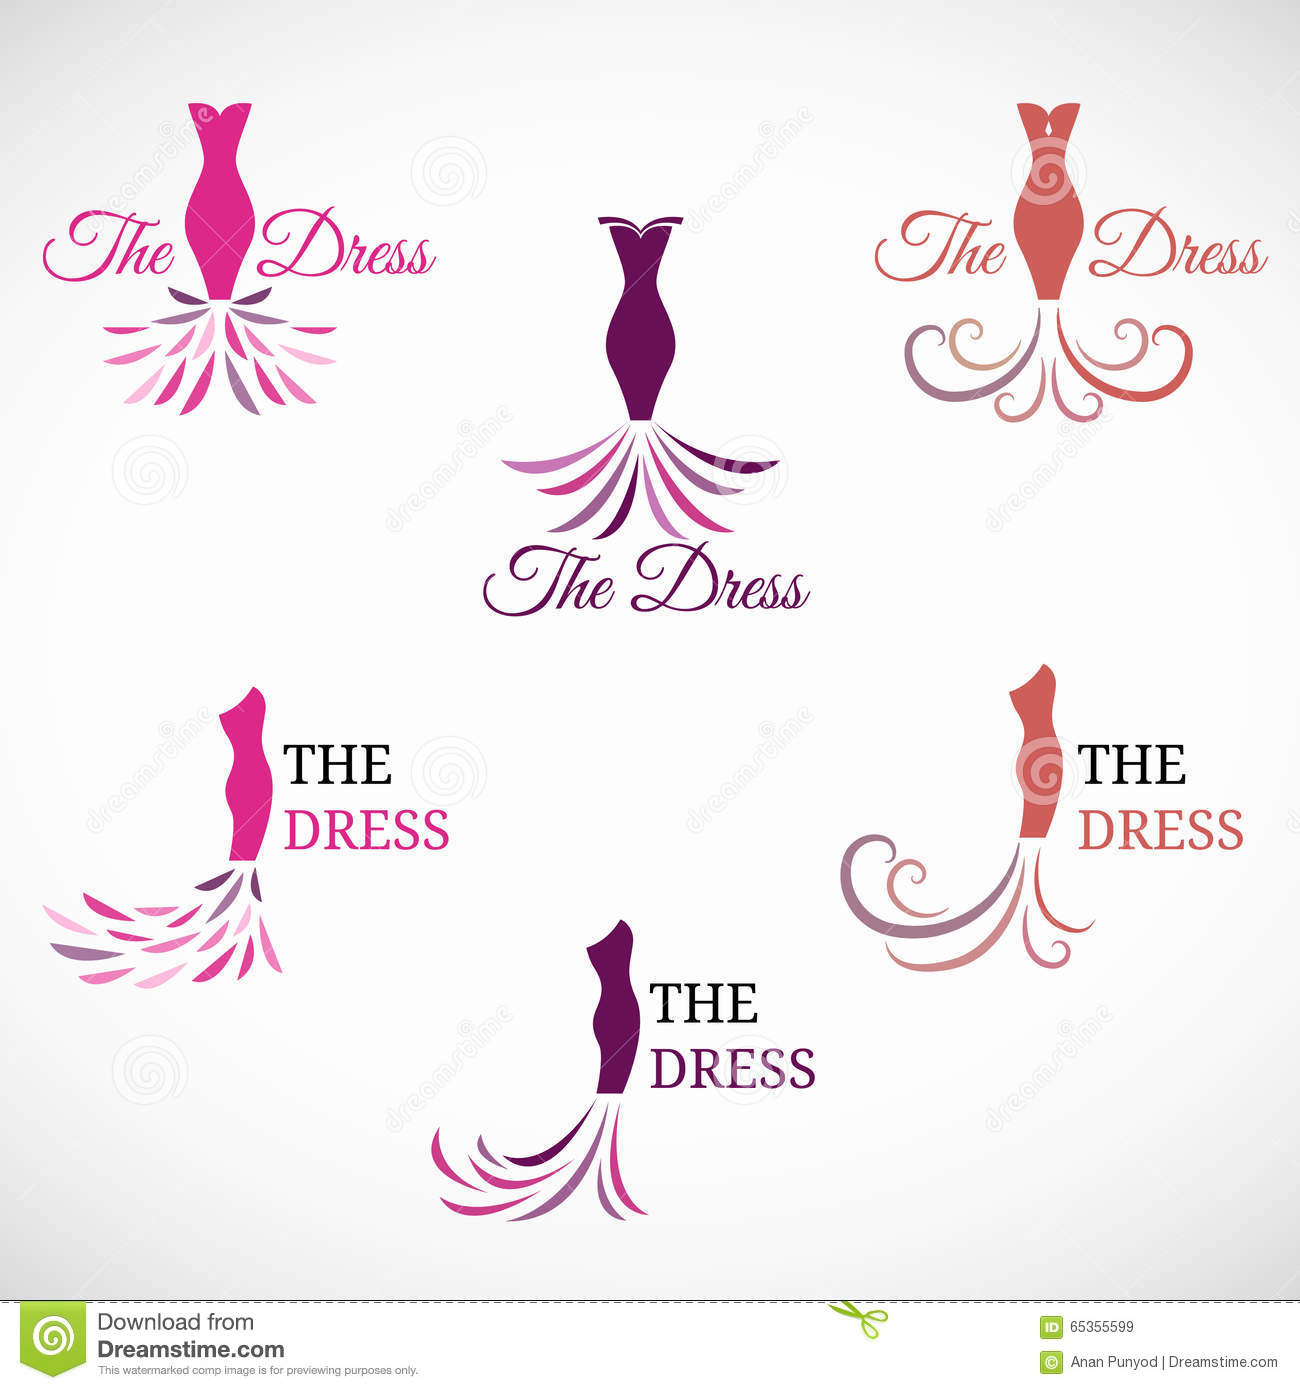 The Woman Dress Logo Vector Set Design Stock Vector ...